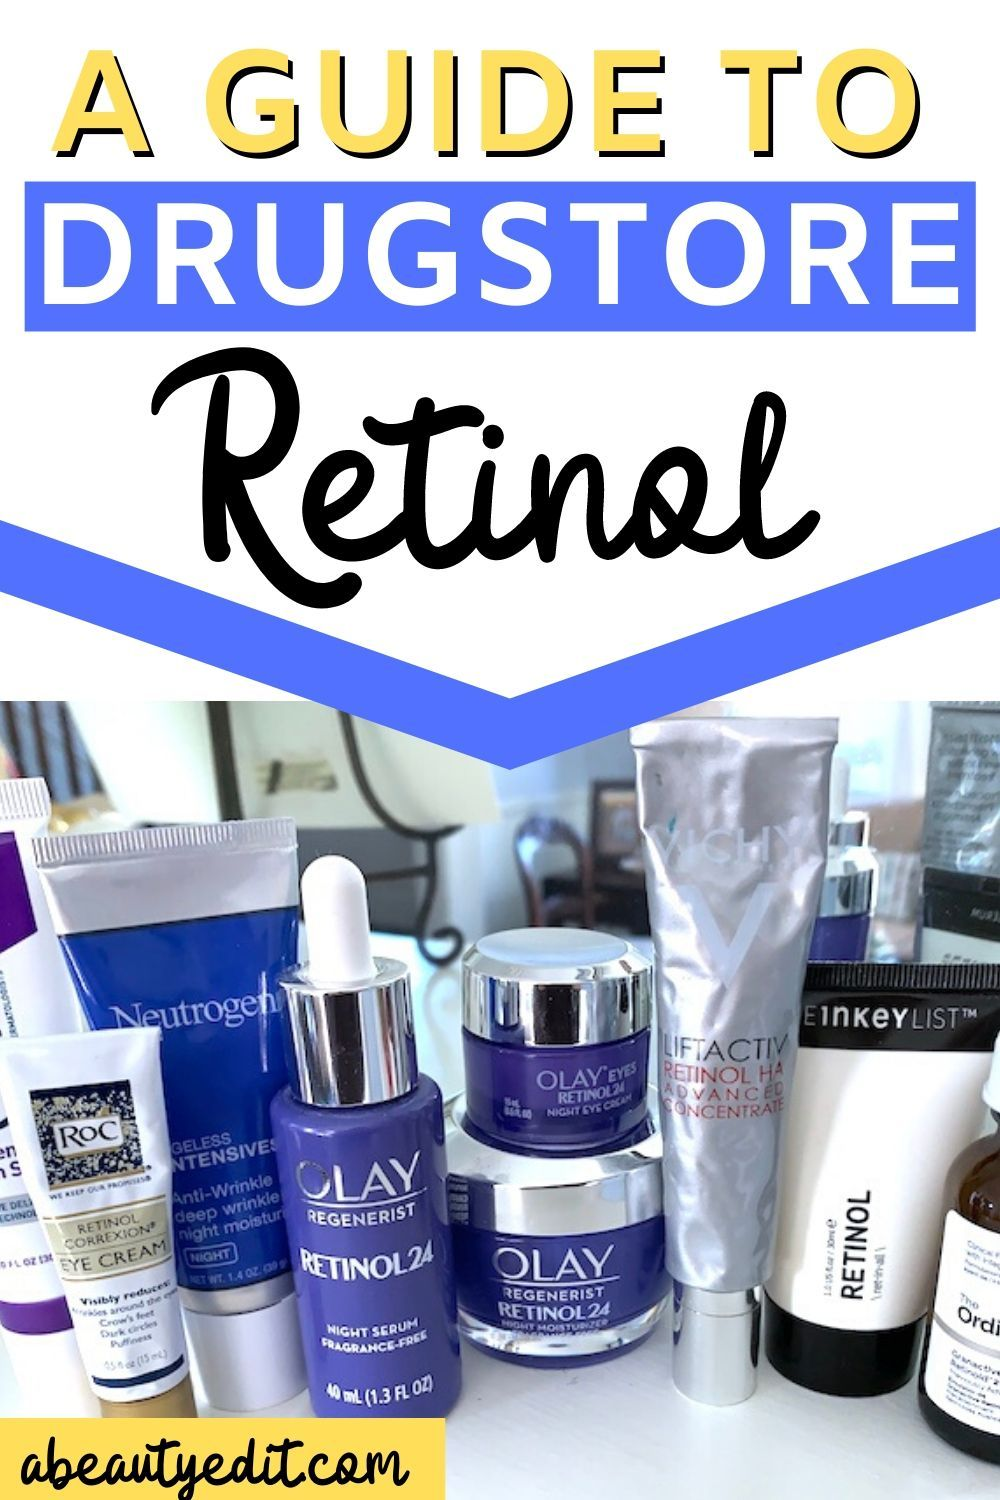 A Guide To Drugstore Retinol Anti Aging Skincare Routine Oily Skin Care Routine Retinoid